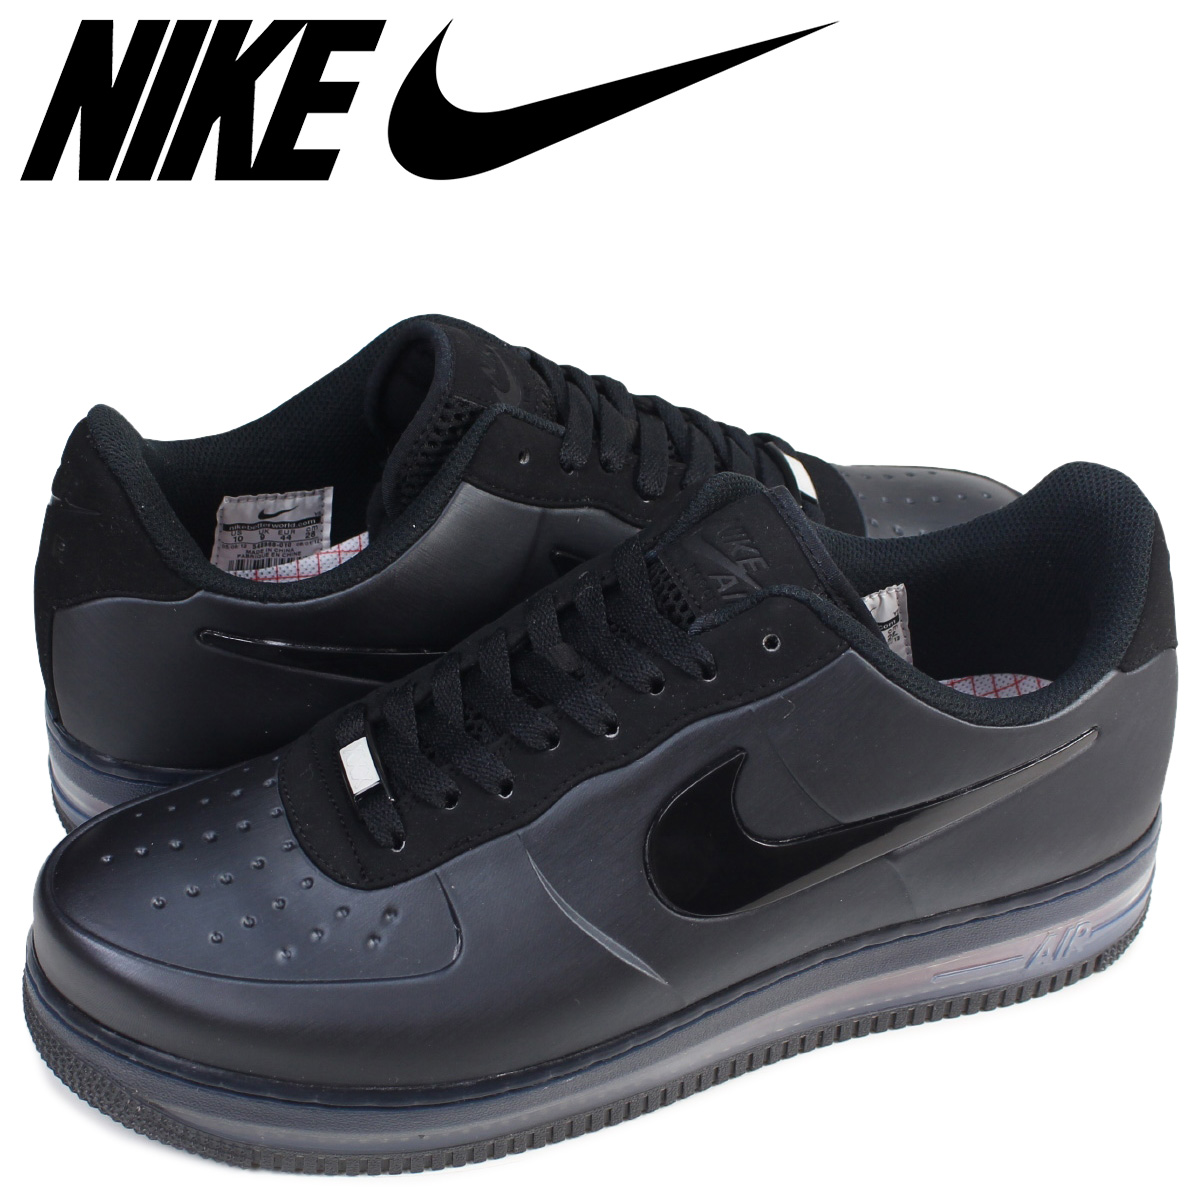 super popular 234a1 7d737 NIKE Nike air force 1 sneakers AIR FORCE 1 POSITE FL MAX QS 548,968-010 low  men shoes black